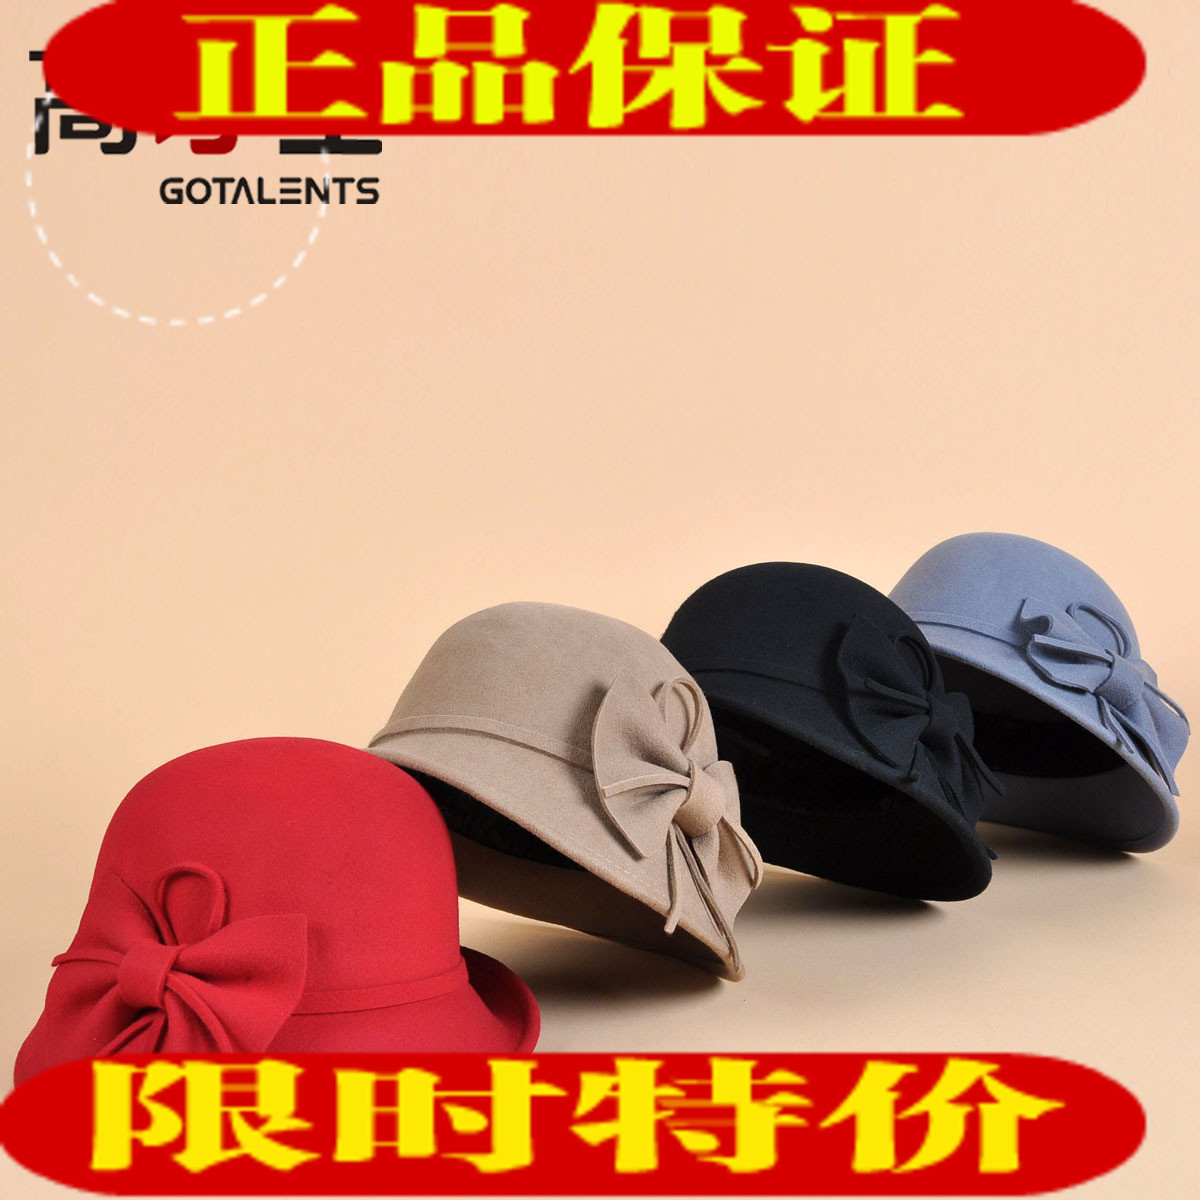 Wool woolen cap hat female dome fashion small fedoras bow 2012(China (Mainland))